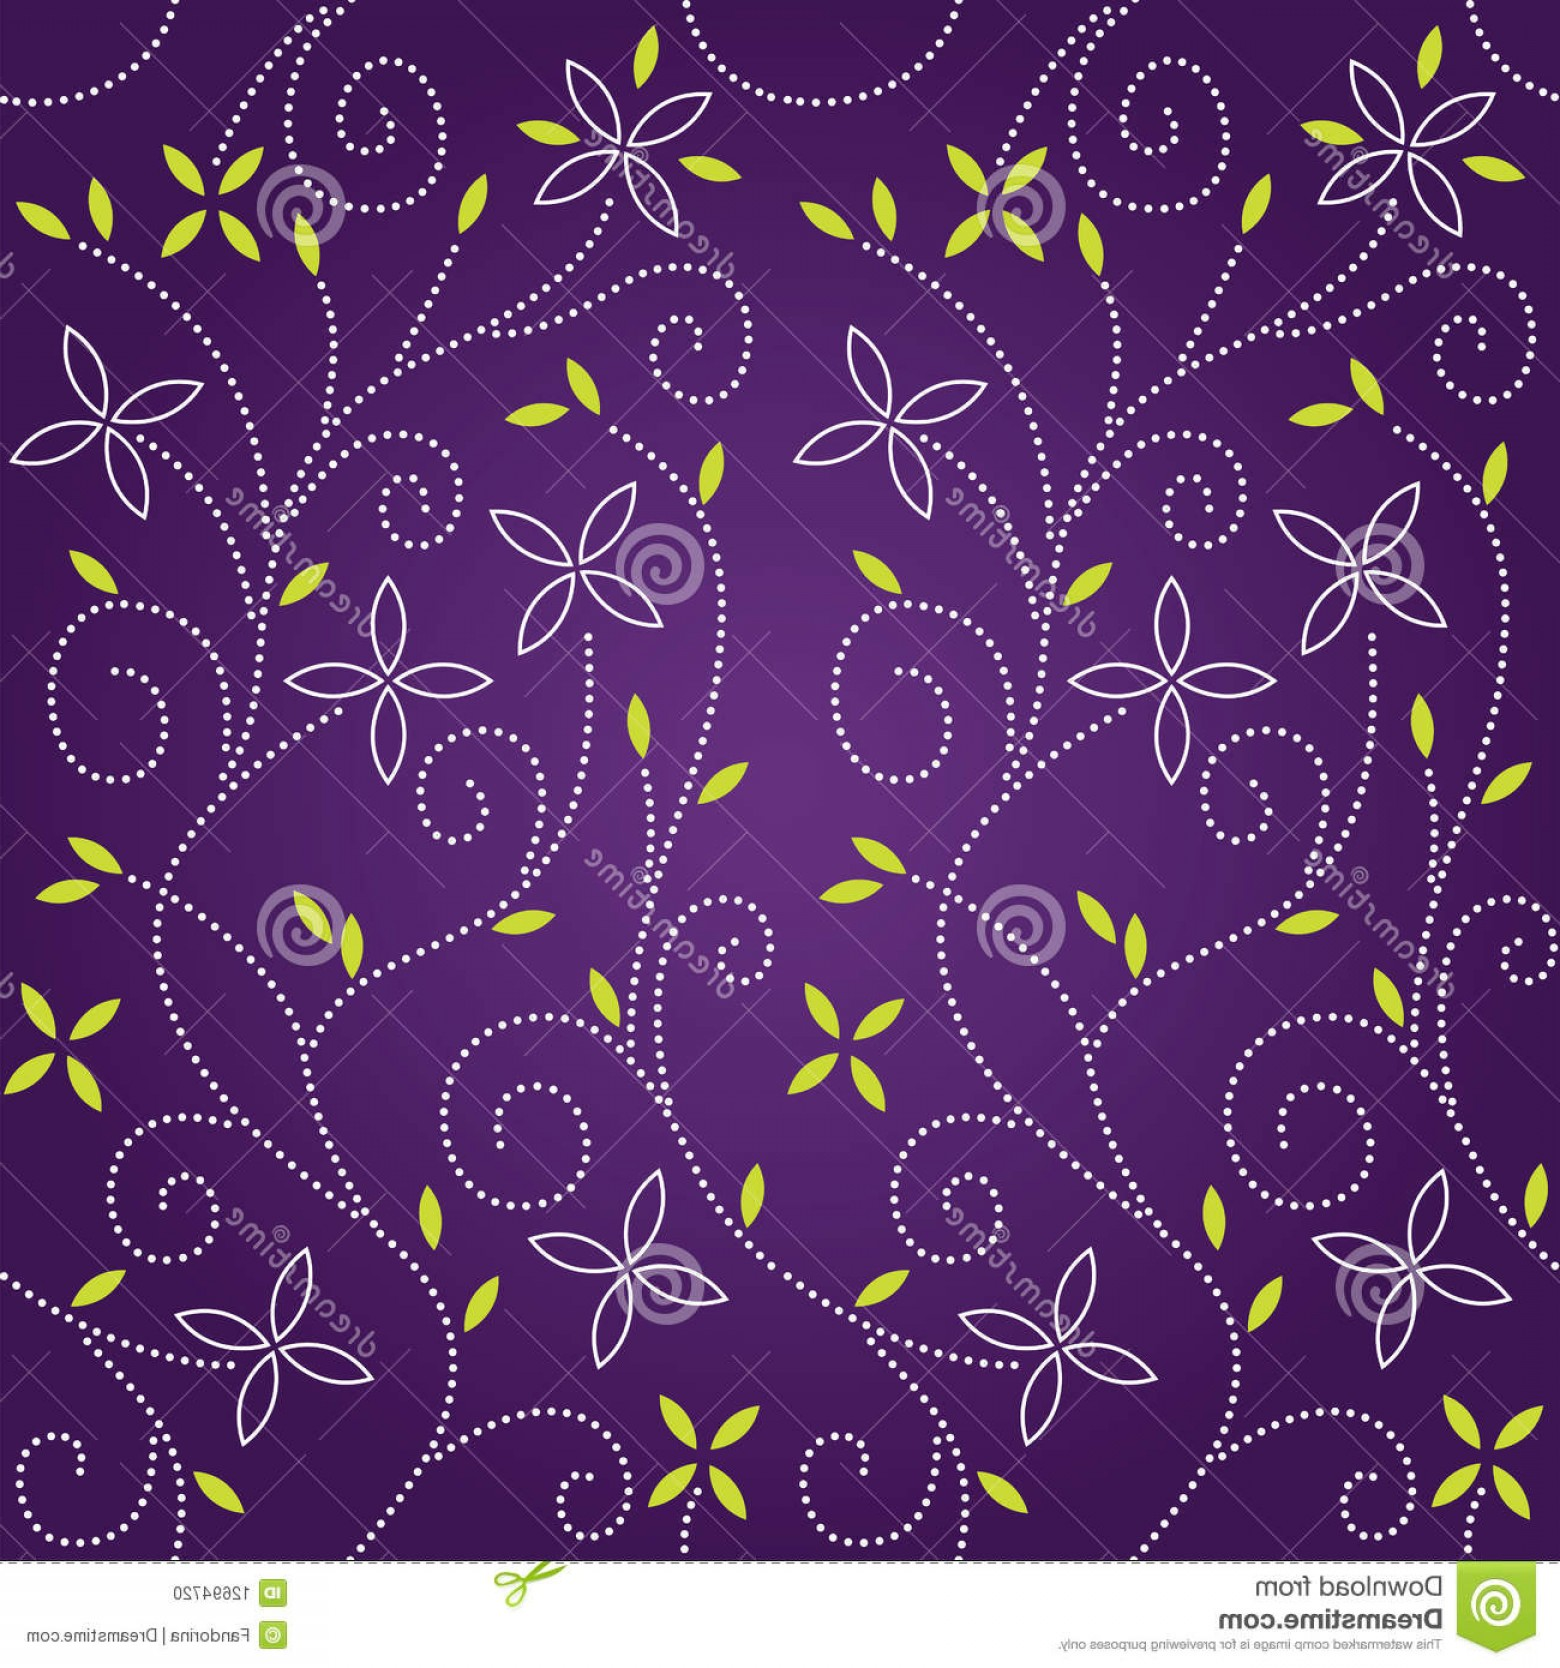 Violet Swirl Design Vector: Stock Photo Purple Swirl Floral Seamless Pattern Image